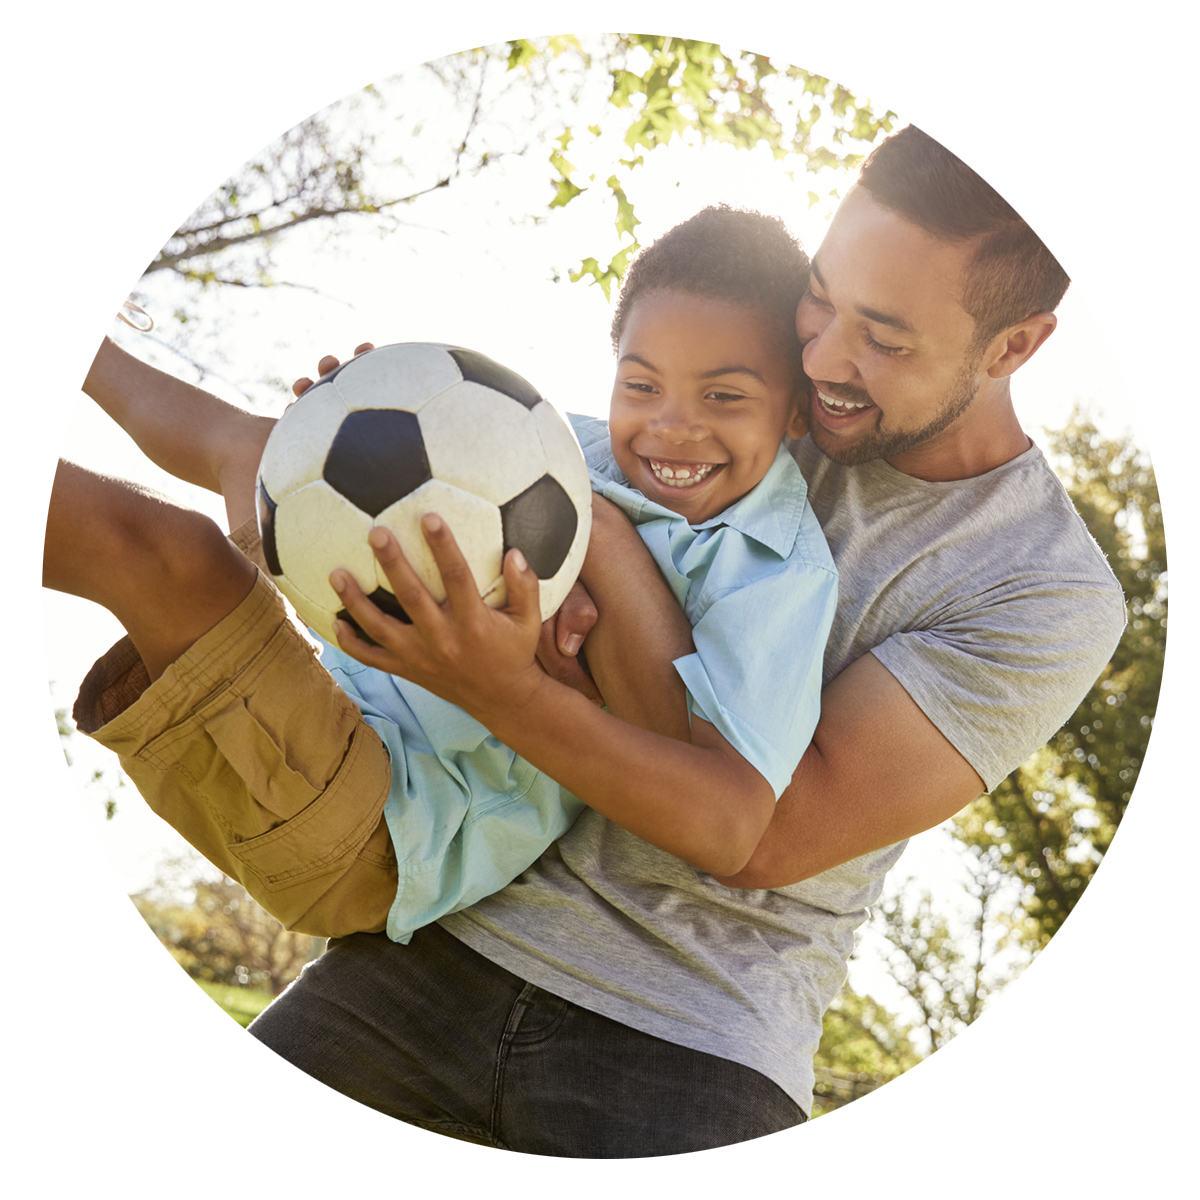 4Kids parenting with presence blog